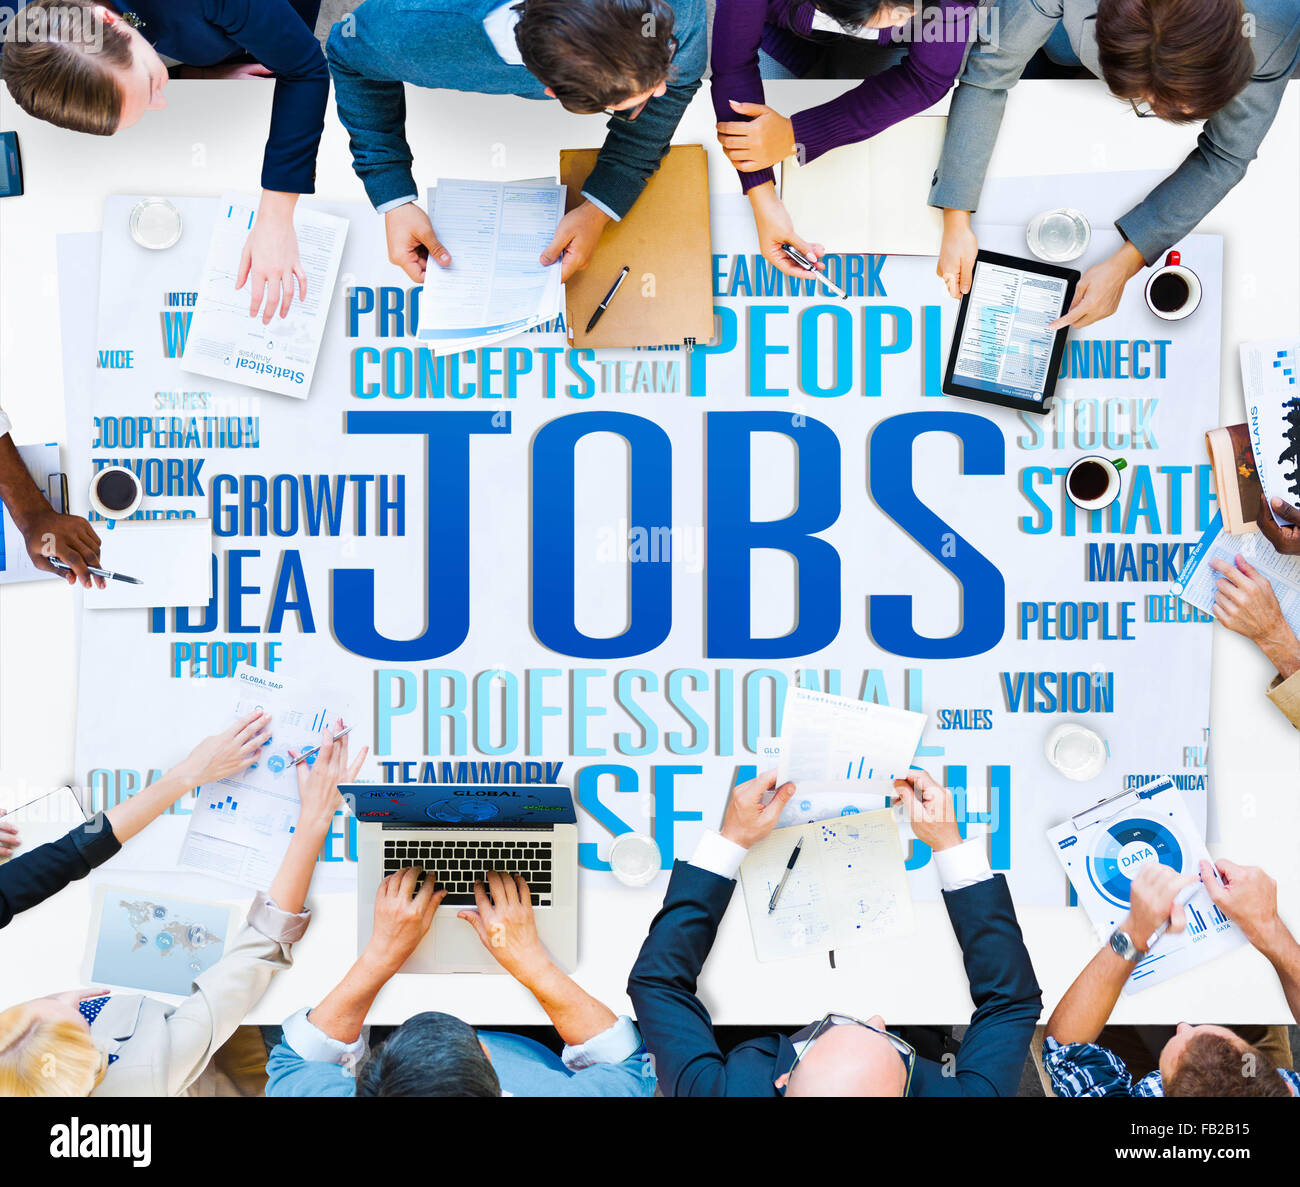 Jobs Occupation Careers Recruitment Employment Concept - Stock Image